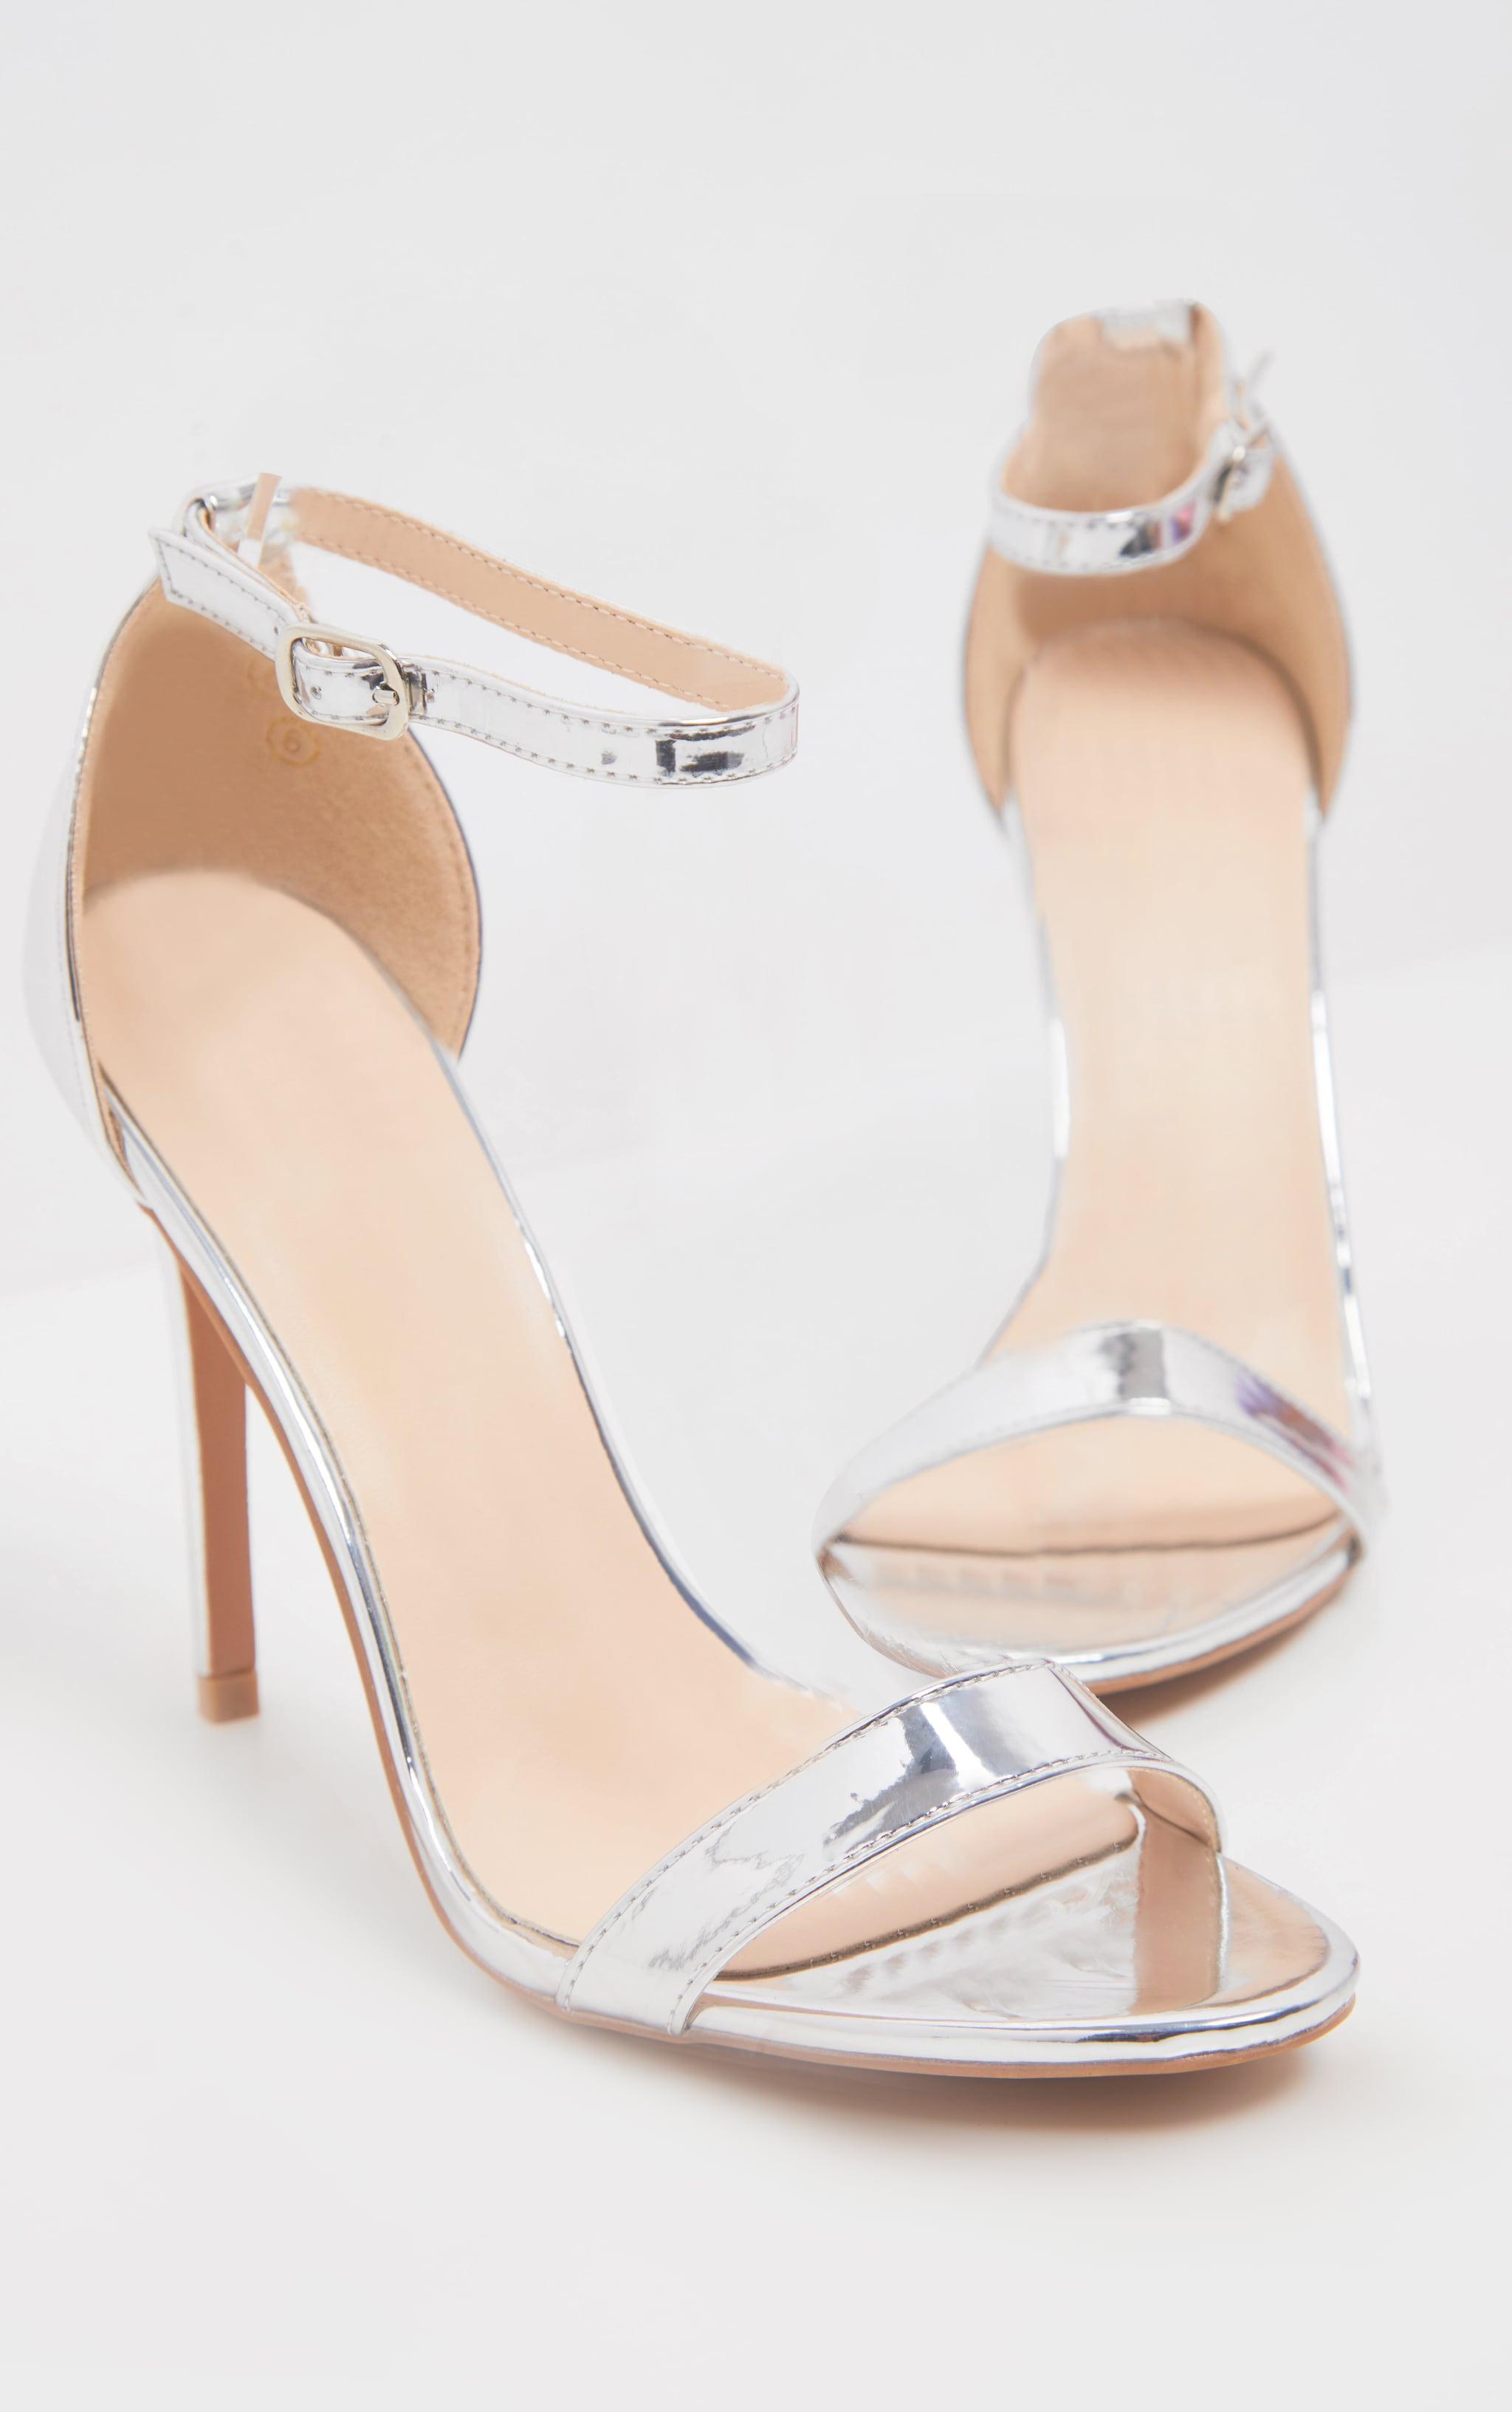 Clover Silver Metallic Strap Heeled Sandals 4